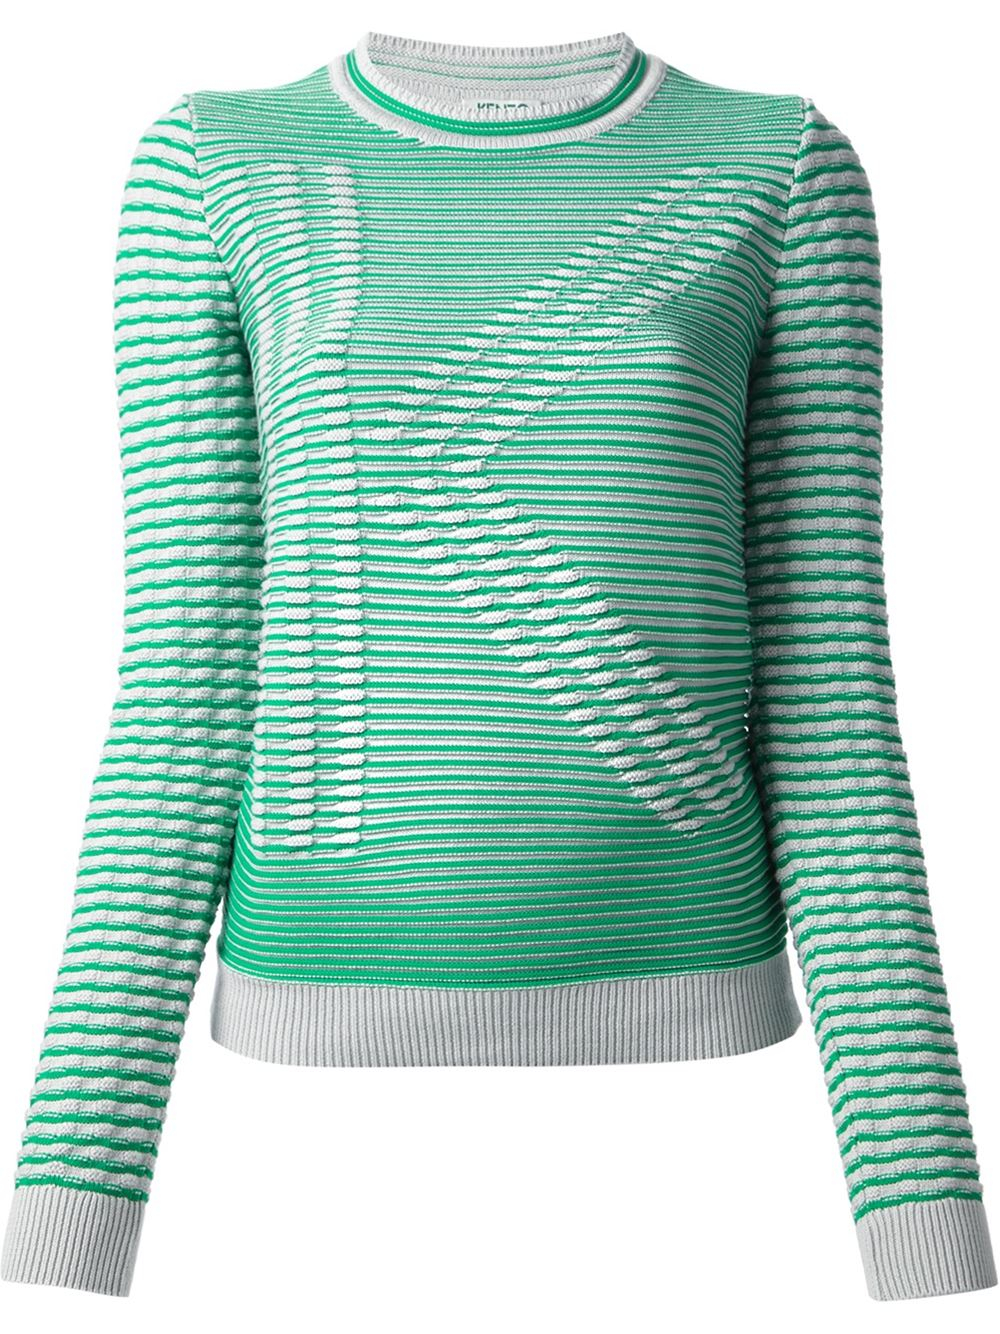 lyst kenzo k ribbed intarsia sweater in green. Black Bedroom Furniture Sets. Home Design Ideas